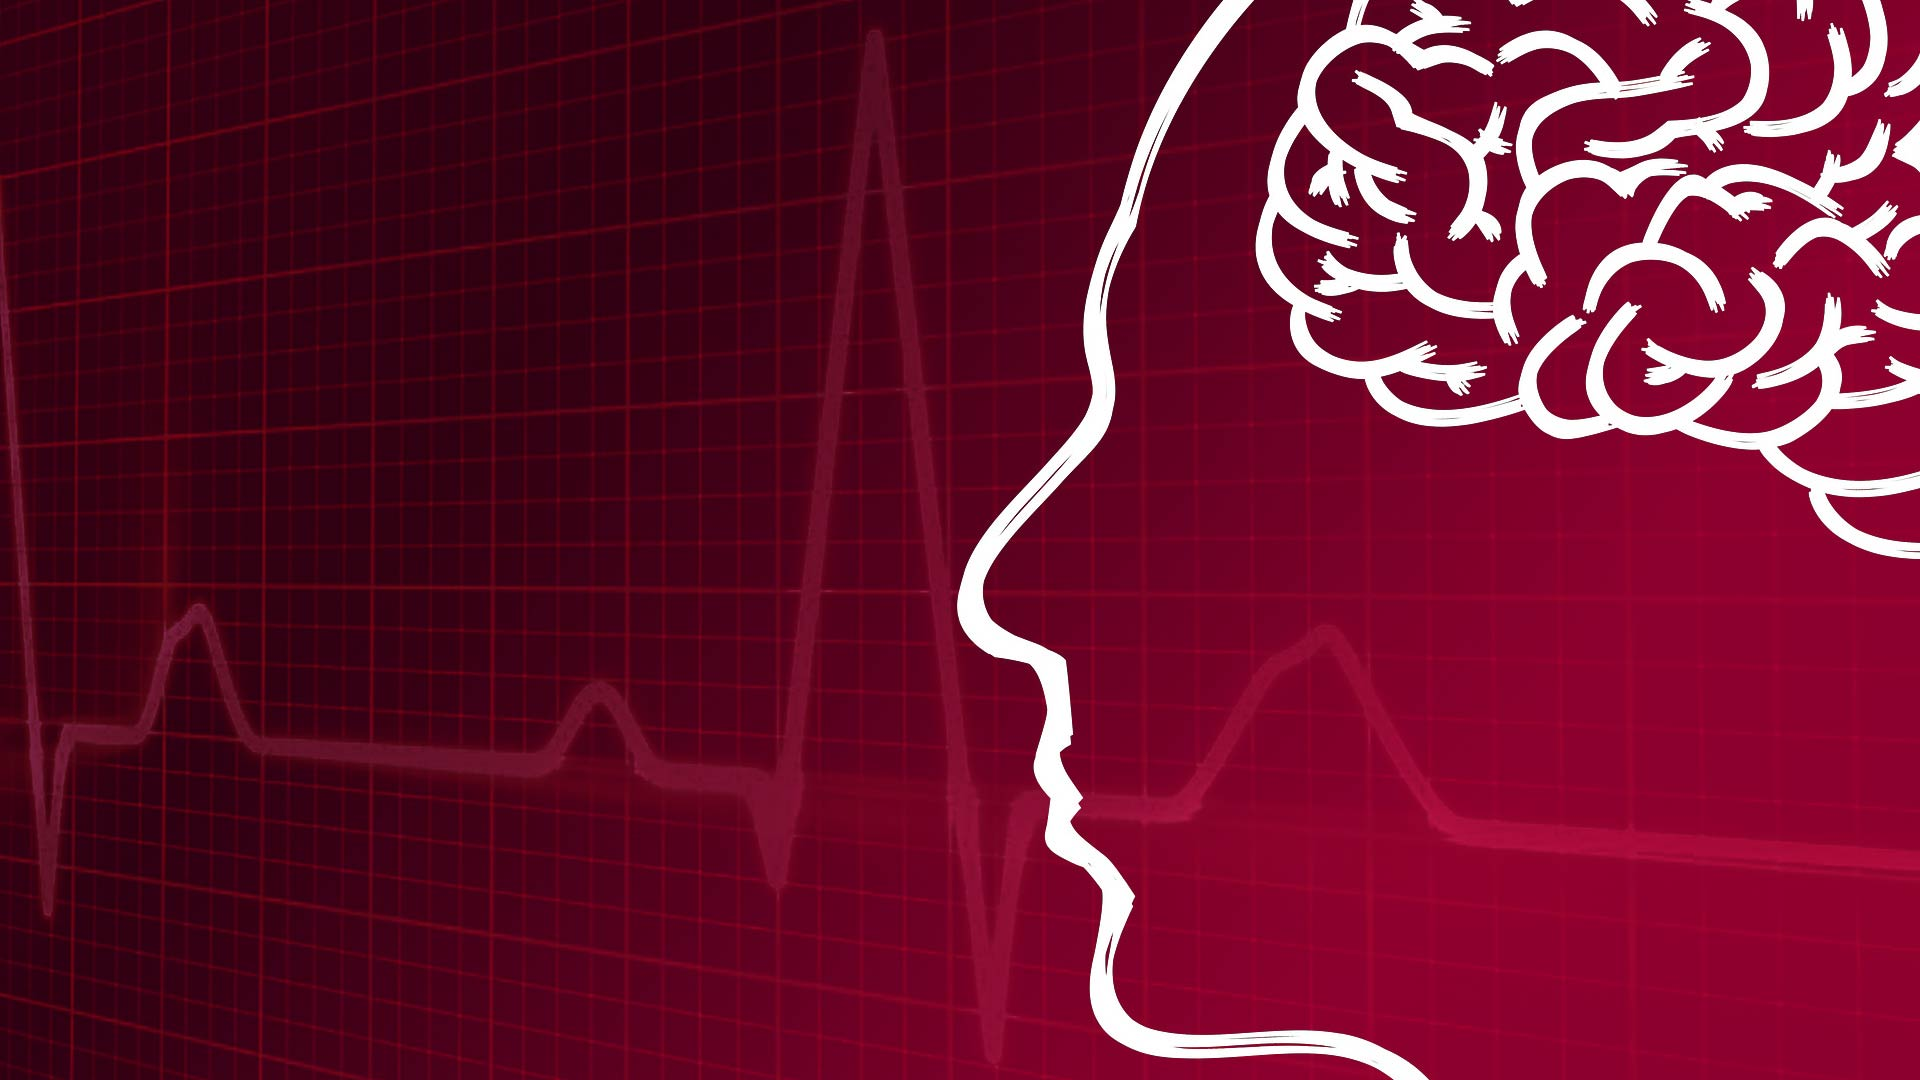 Some patients find difficulty concentrating after heart surgery.